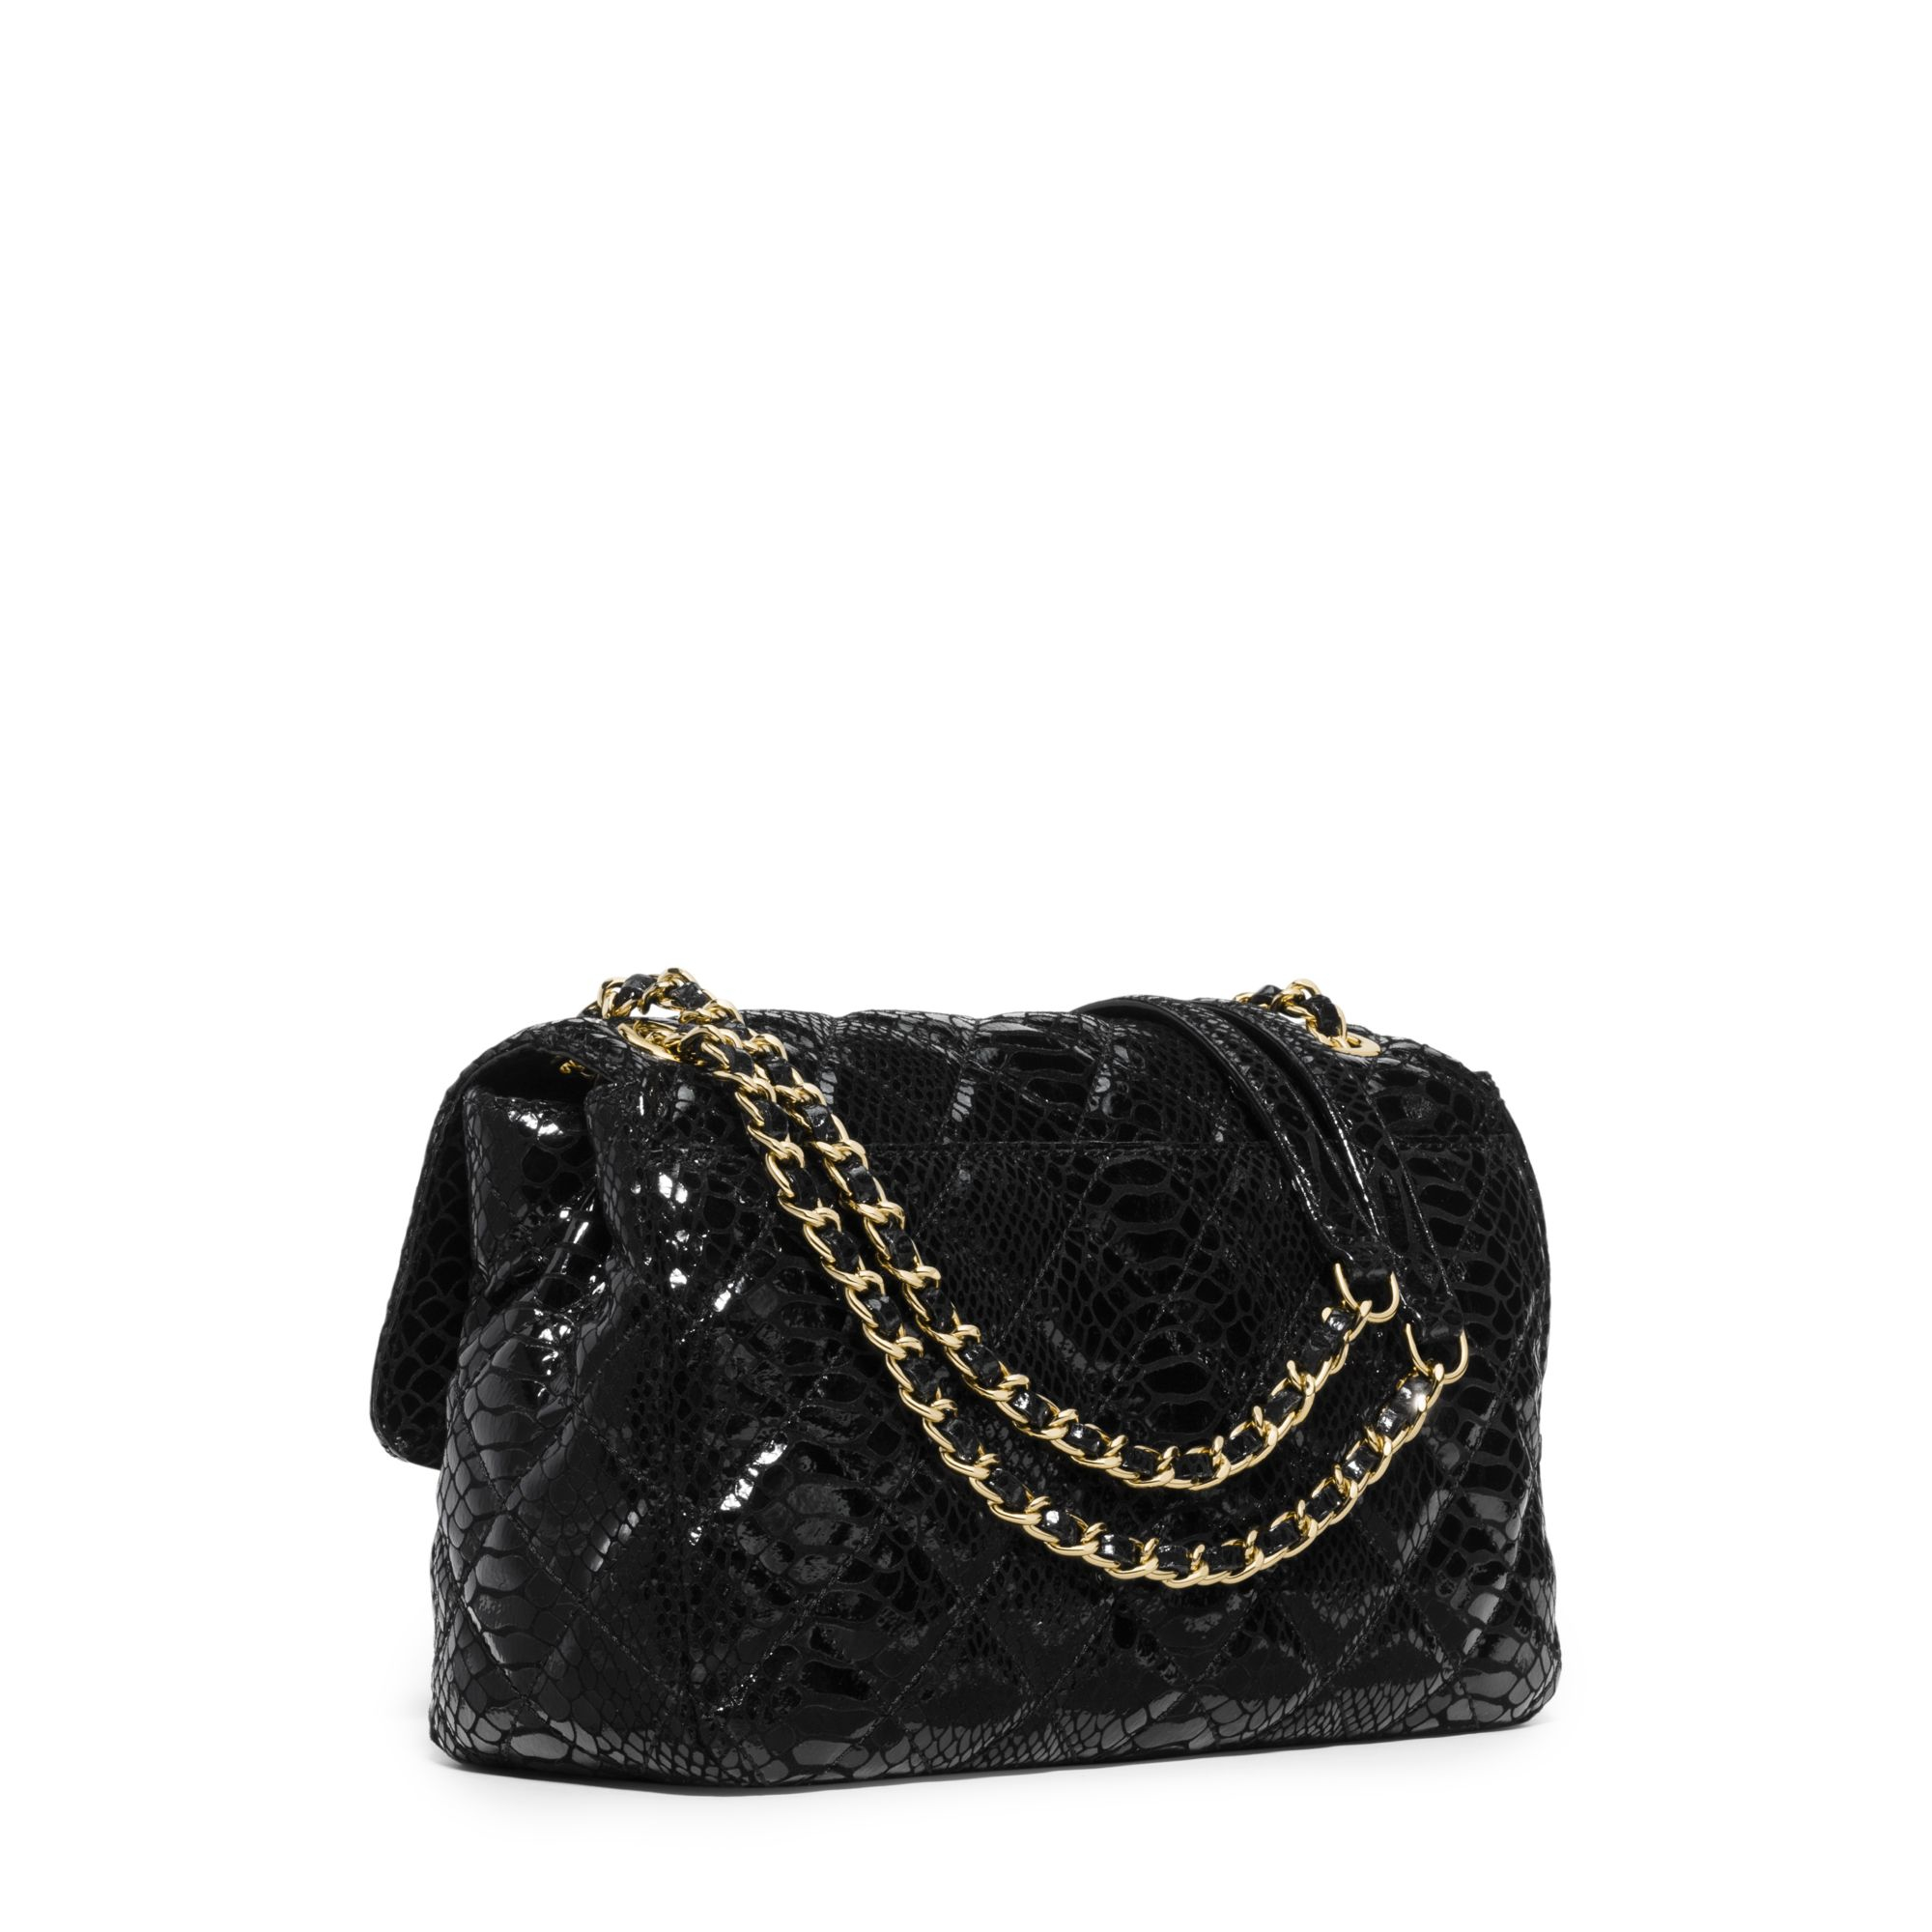 41bc9fb114d7 Lyst - Michael Kors Sloan Large Embossed Patent-leather Crossbody in Black